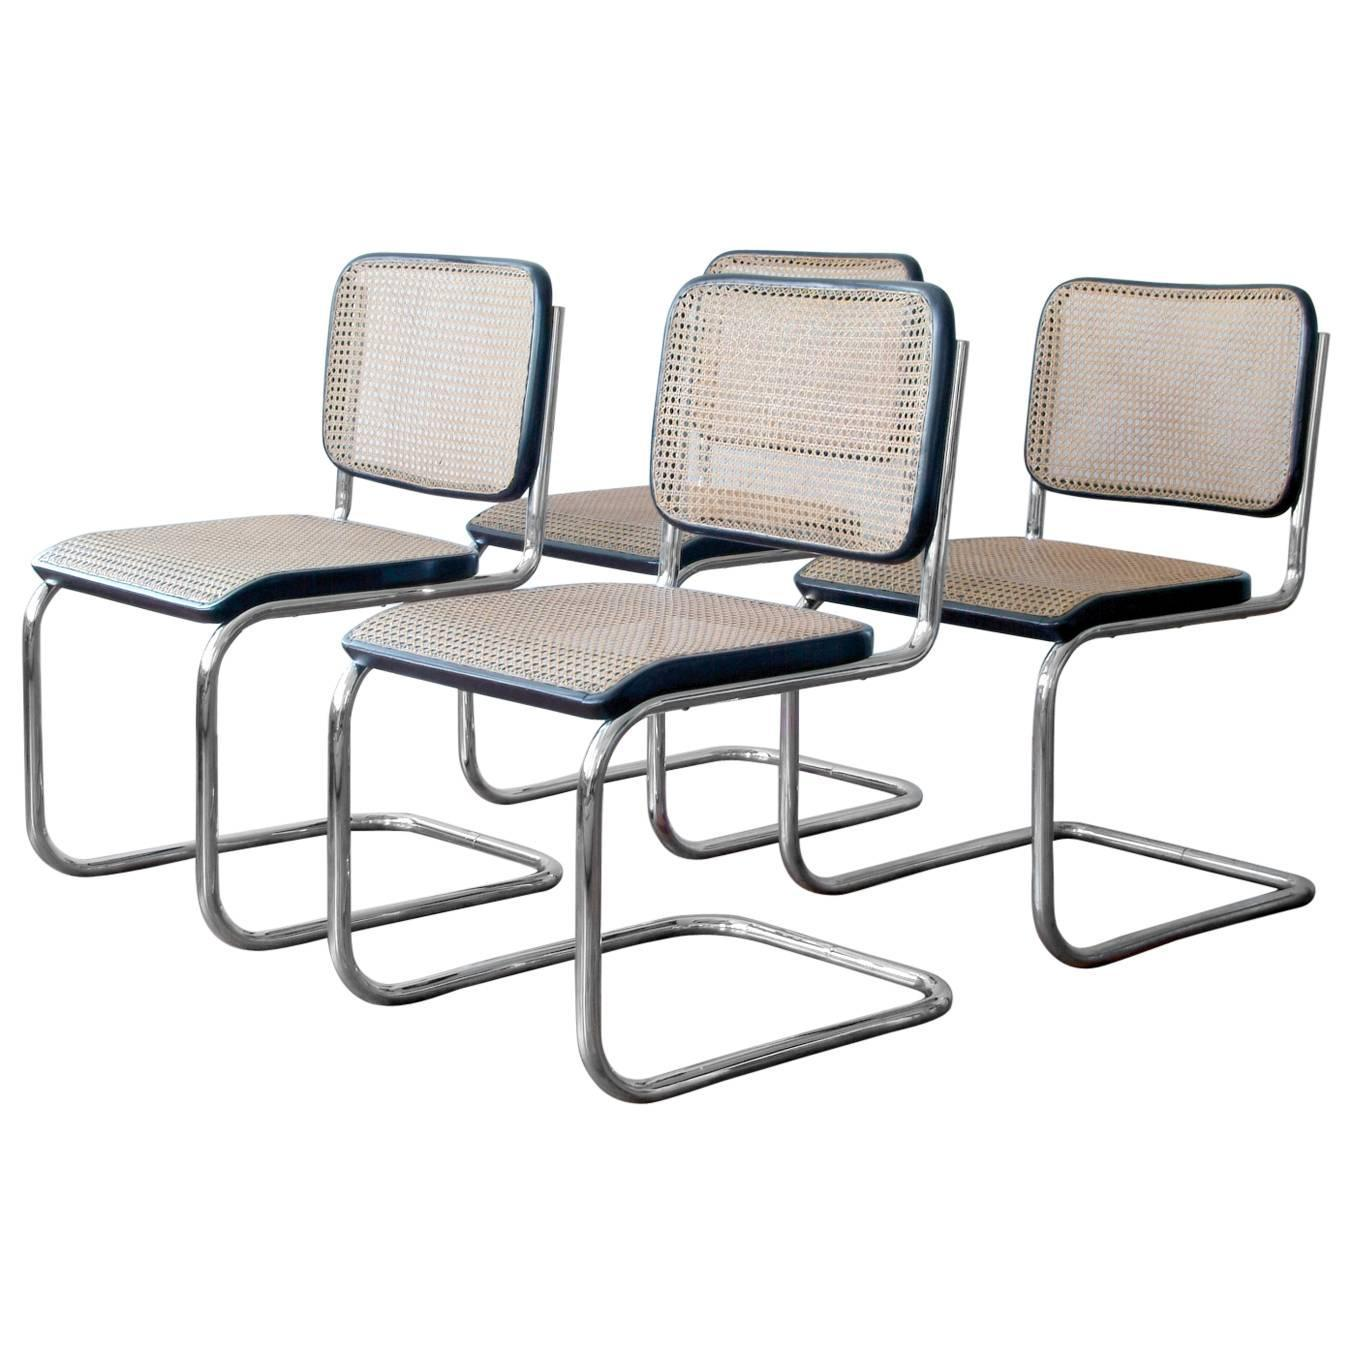 marcel breuer chair hunting swivel bauhaus tubular steel cantilever chairs by